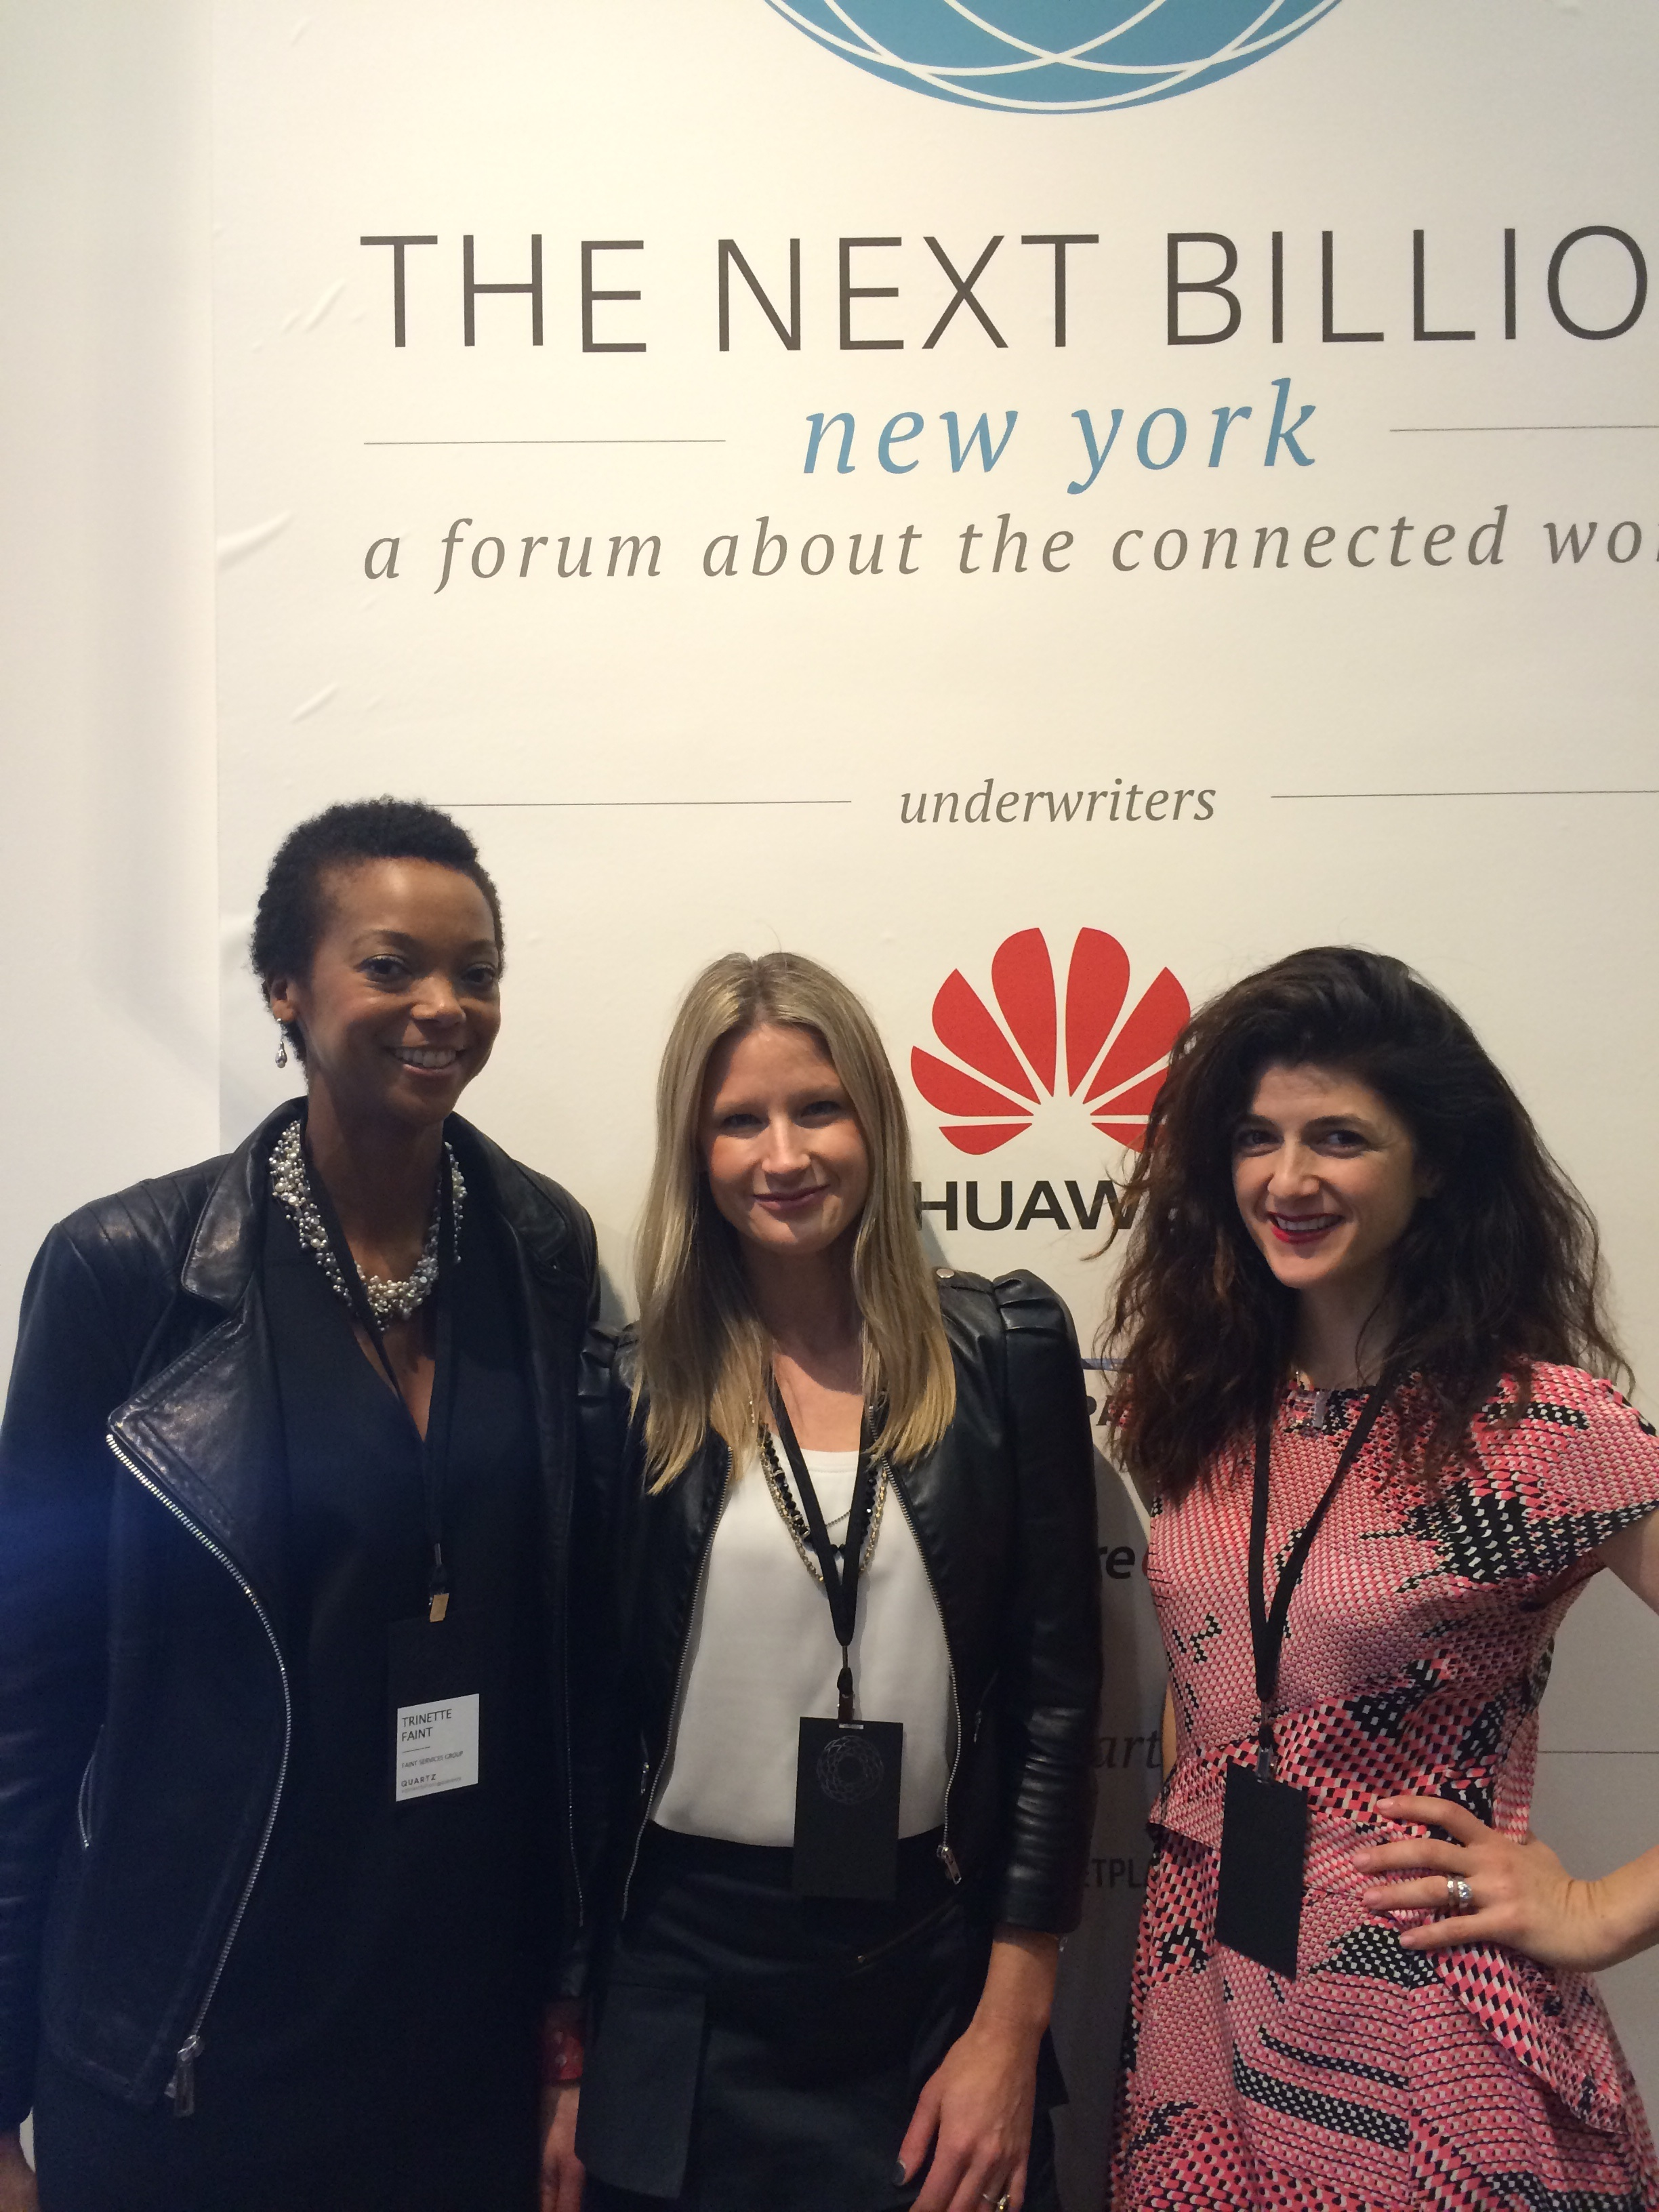 With Maxine Friedman of Bionic Solution and Susan Naci of 32 Laight Street Partners.